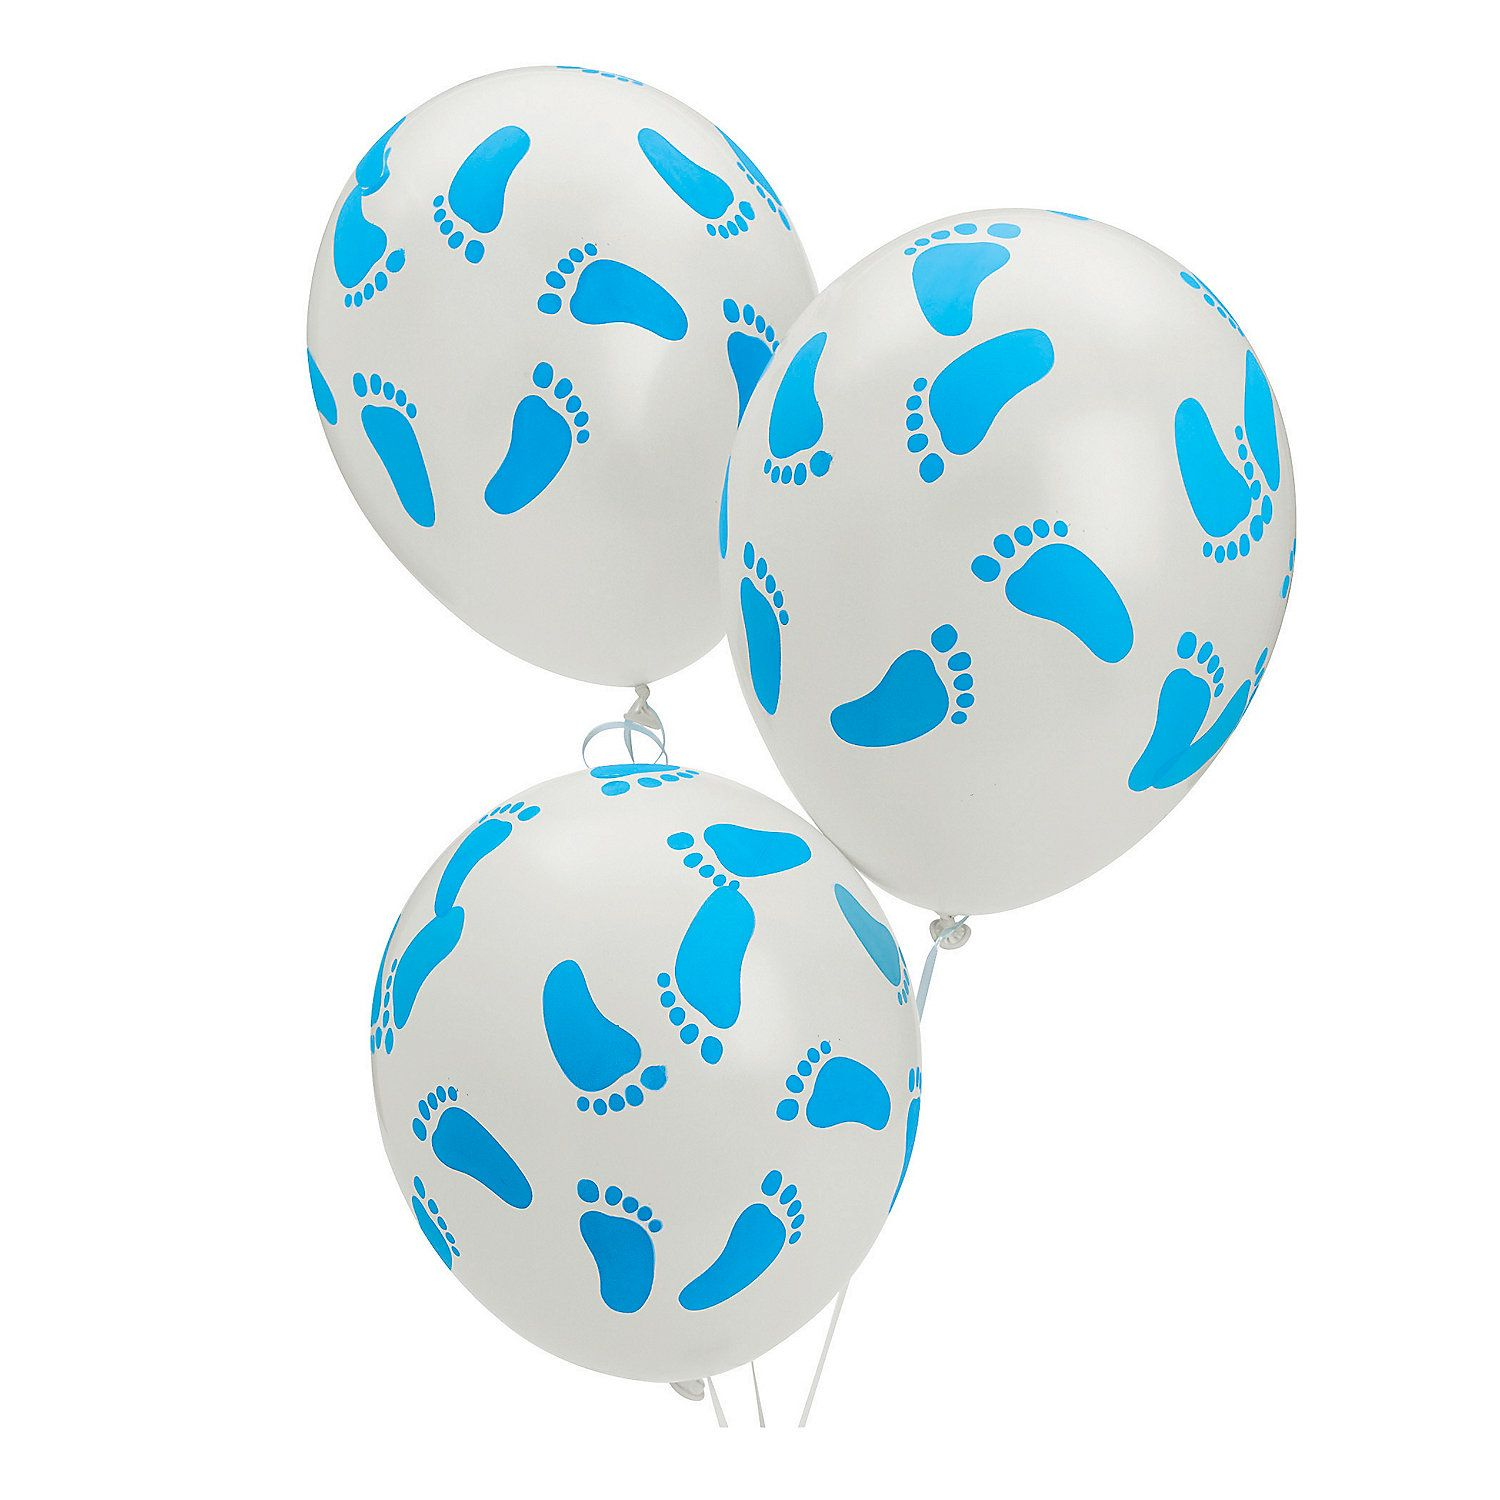 Blue Latex Baby Footprints Balloons. Welcome a newborn boy with blue footprints! These adorable balloons make a great centerpiece for the baby shower or decoration for the gift table.